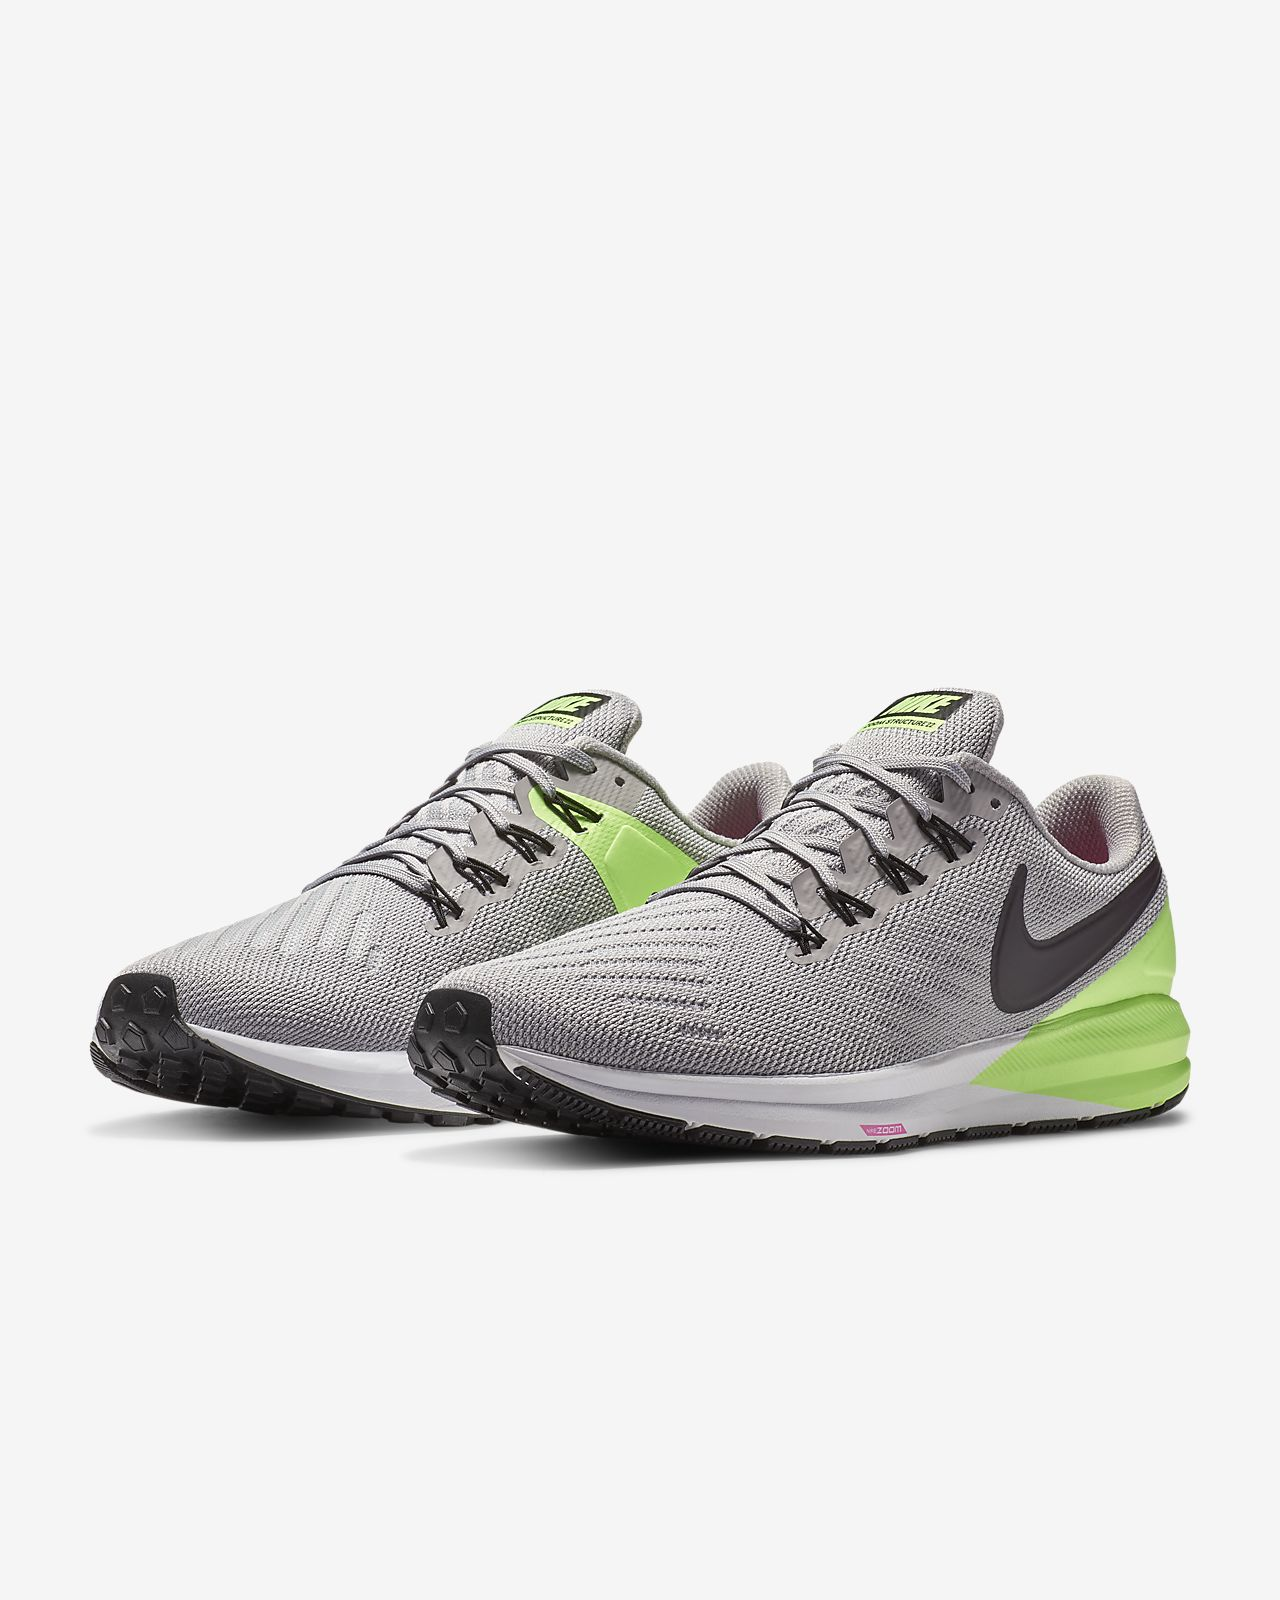 0f81fc740e Nike Air Zoom Structure 22 Men s Running Shoe. Nike.com IE